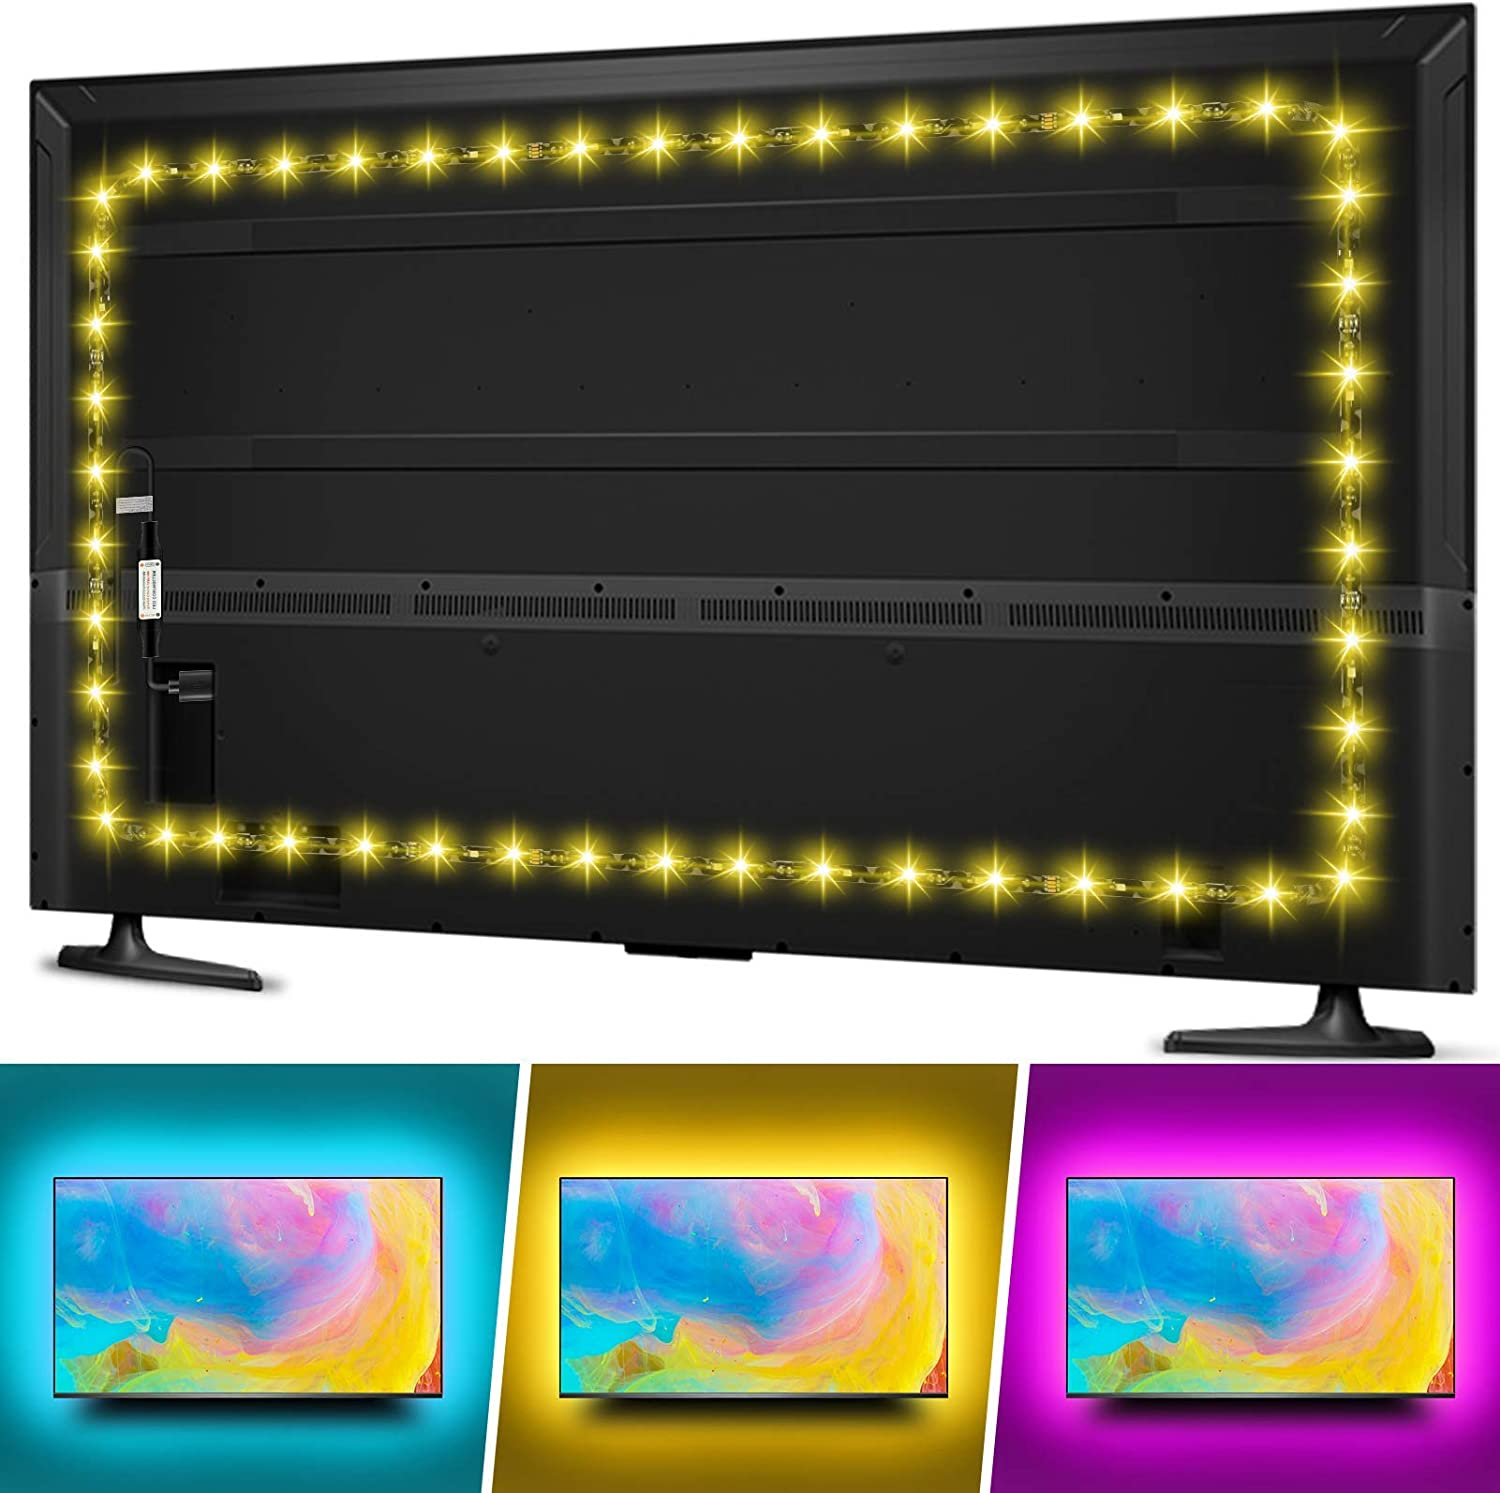 TV LED Backlight for 70 75 80 82inches TV, Hiromeco 18Ft USB TV Bias Lighting with RF Remote- Cover 4/4 Sides TV Background Lights Christmas Ambient Mood Lighting